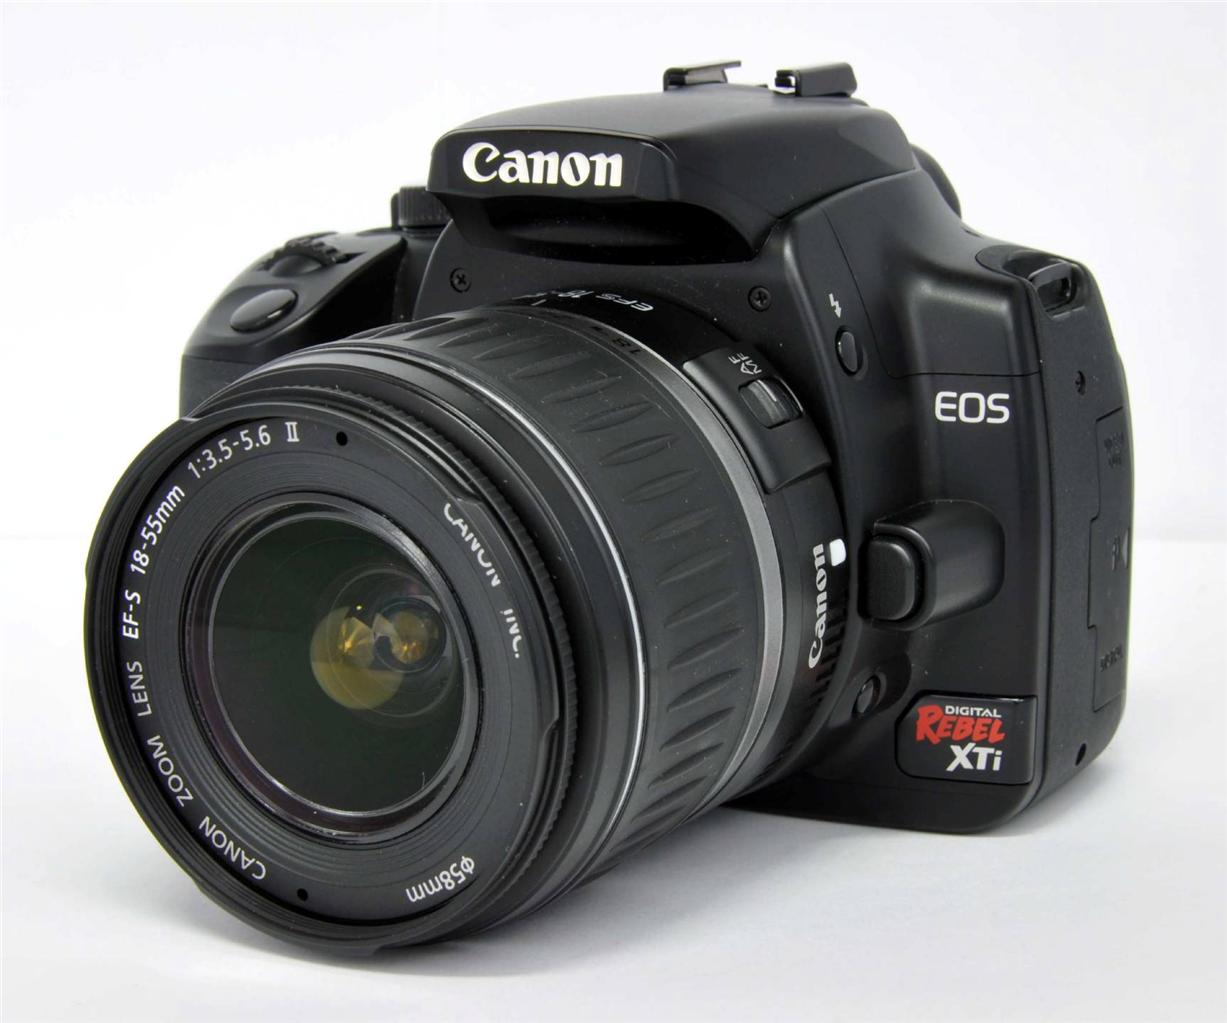 canon eos rebel xti: